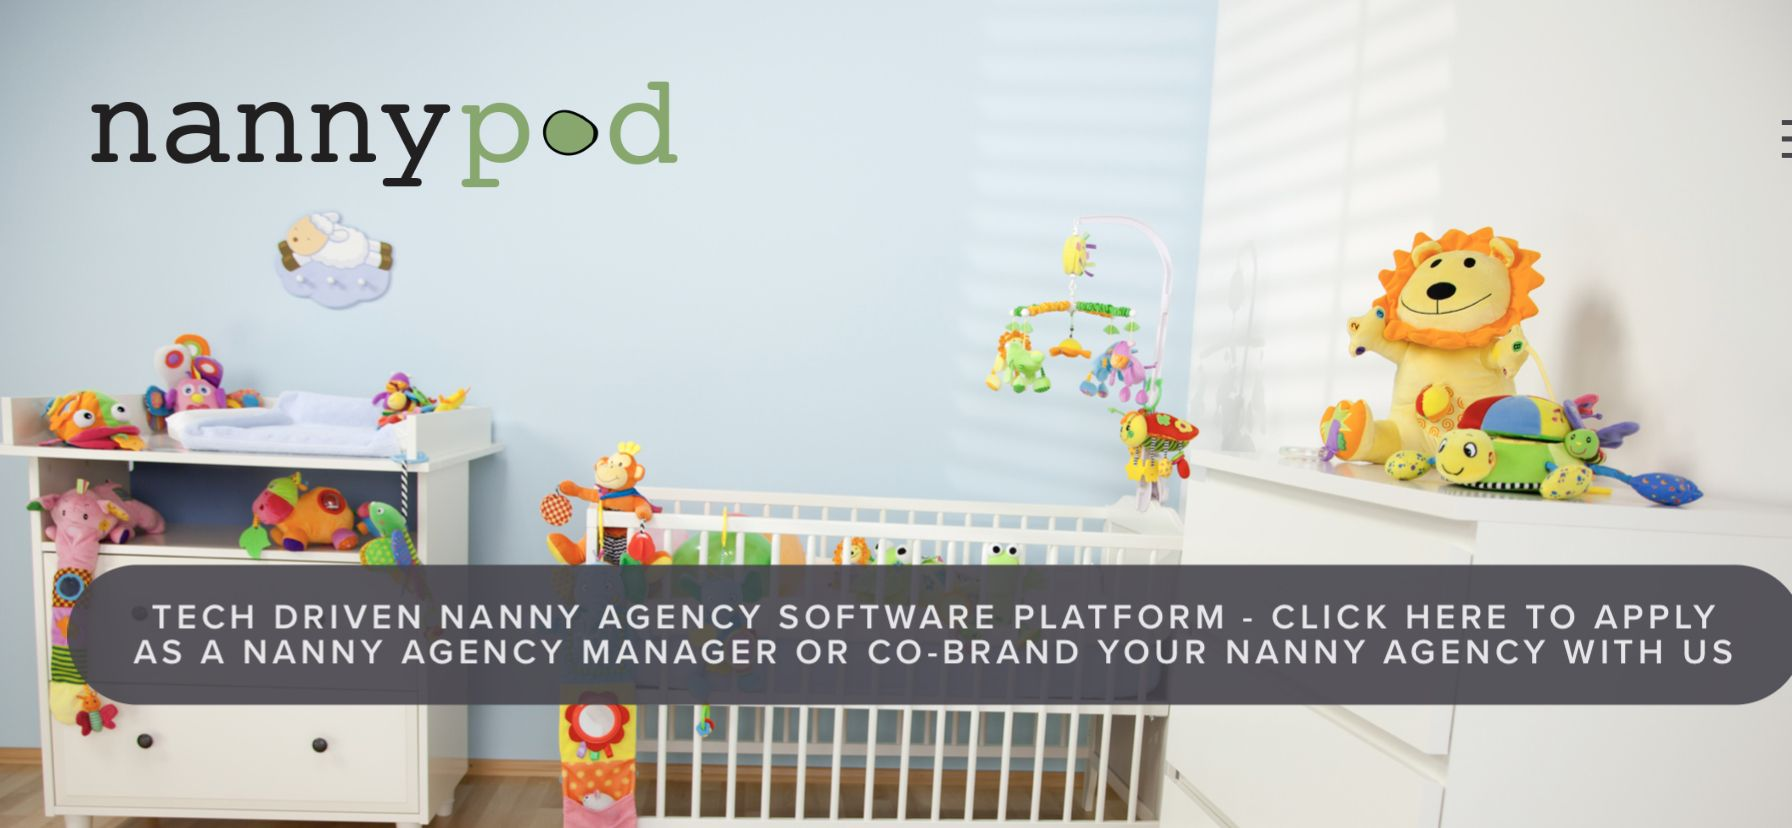 Nanny Agency Software Platform To Provide Nanny Placements And On Demand Babysitters Nannypod Childcare Business Nanny Agencies Nanny